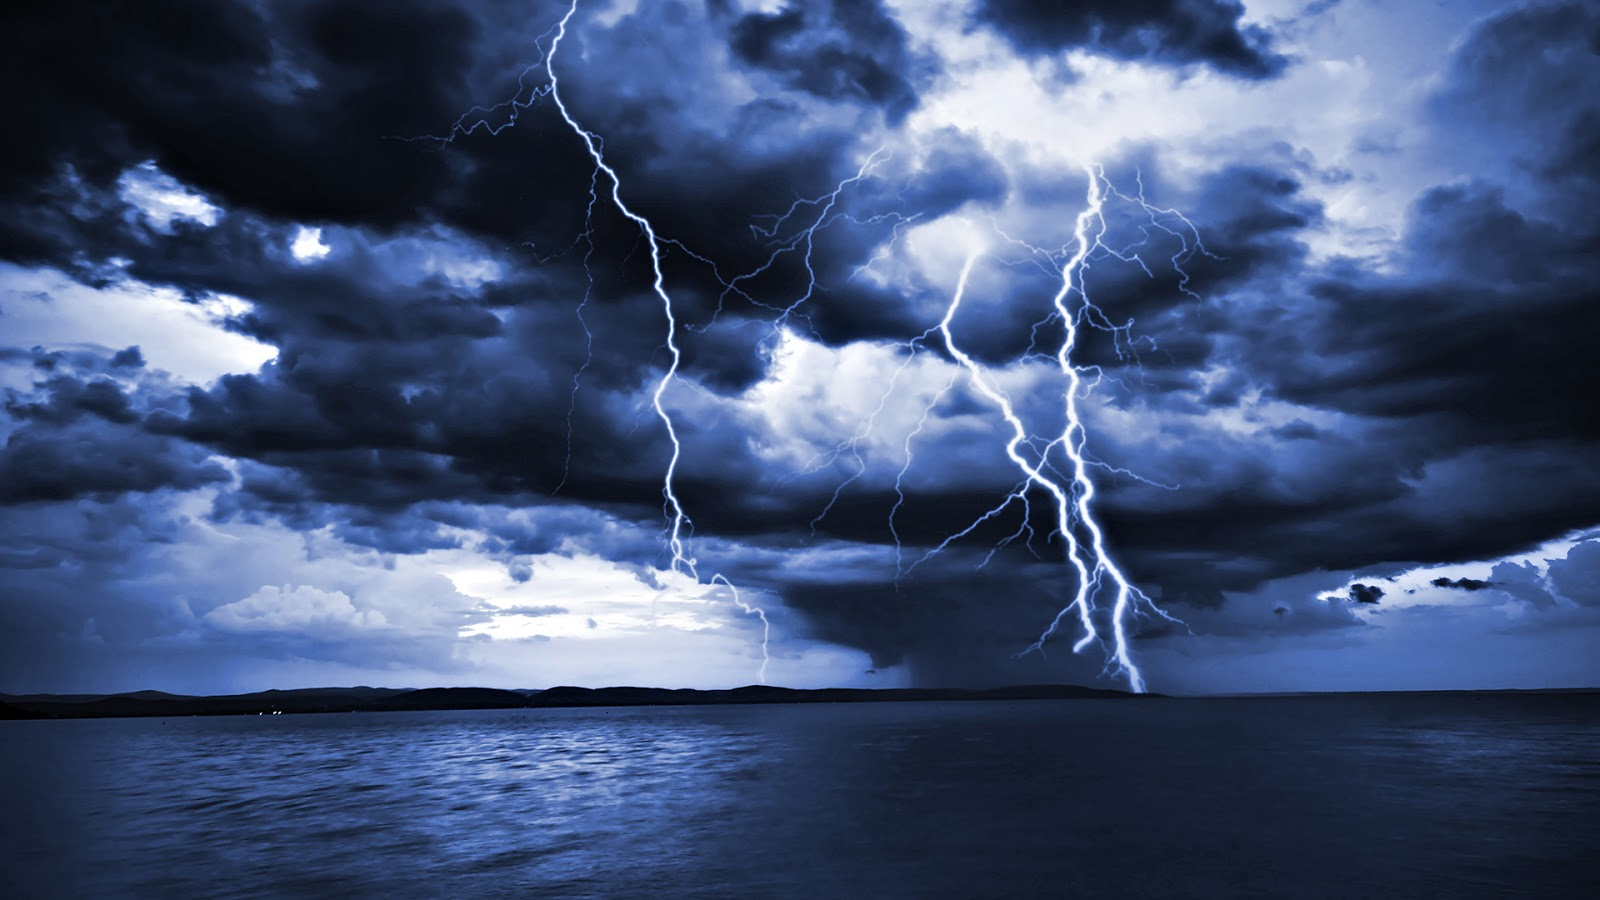 All wallpaper Beautifull sky lightning wallpapers hd 1600x900